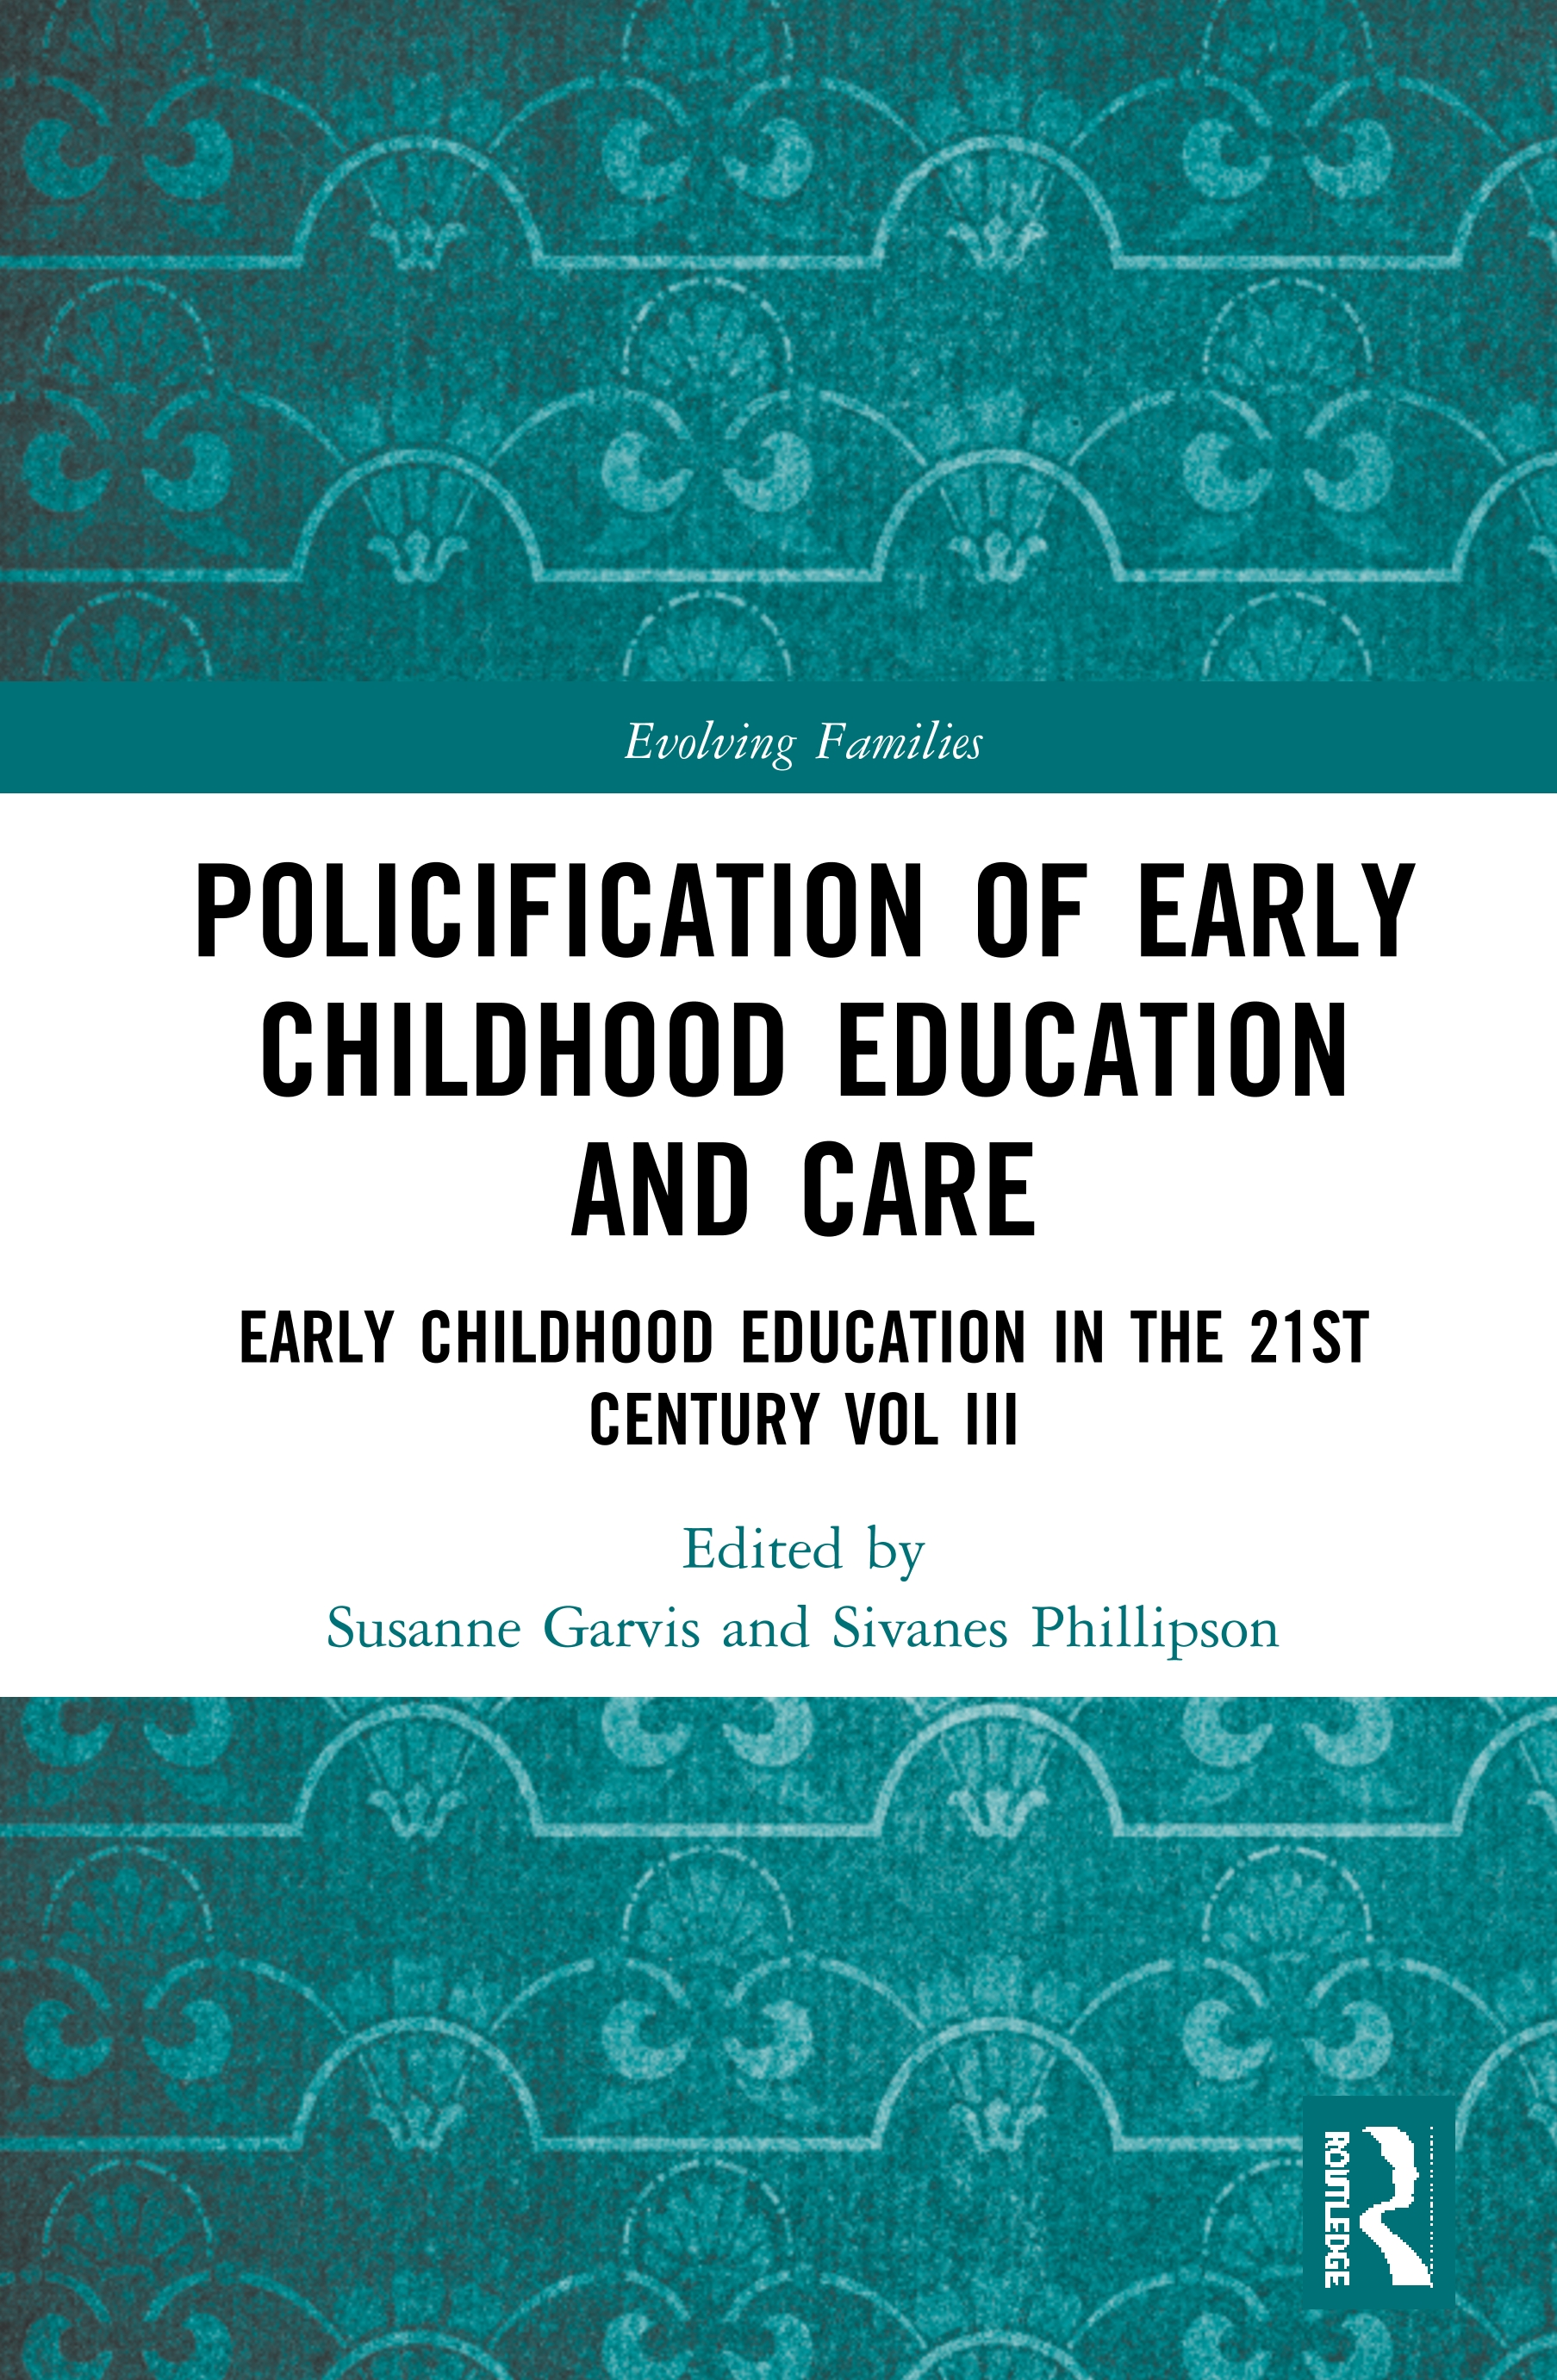 Policification of Early Childhood Education and Care: Early Childhood Education in the 21st Century Vol III book cover